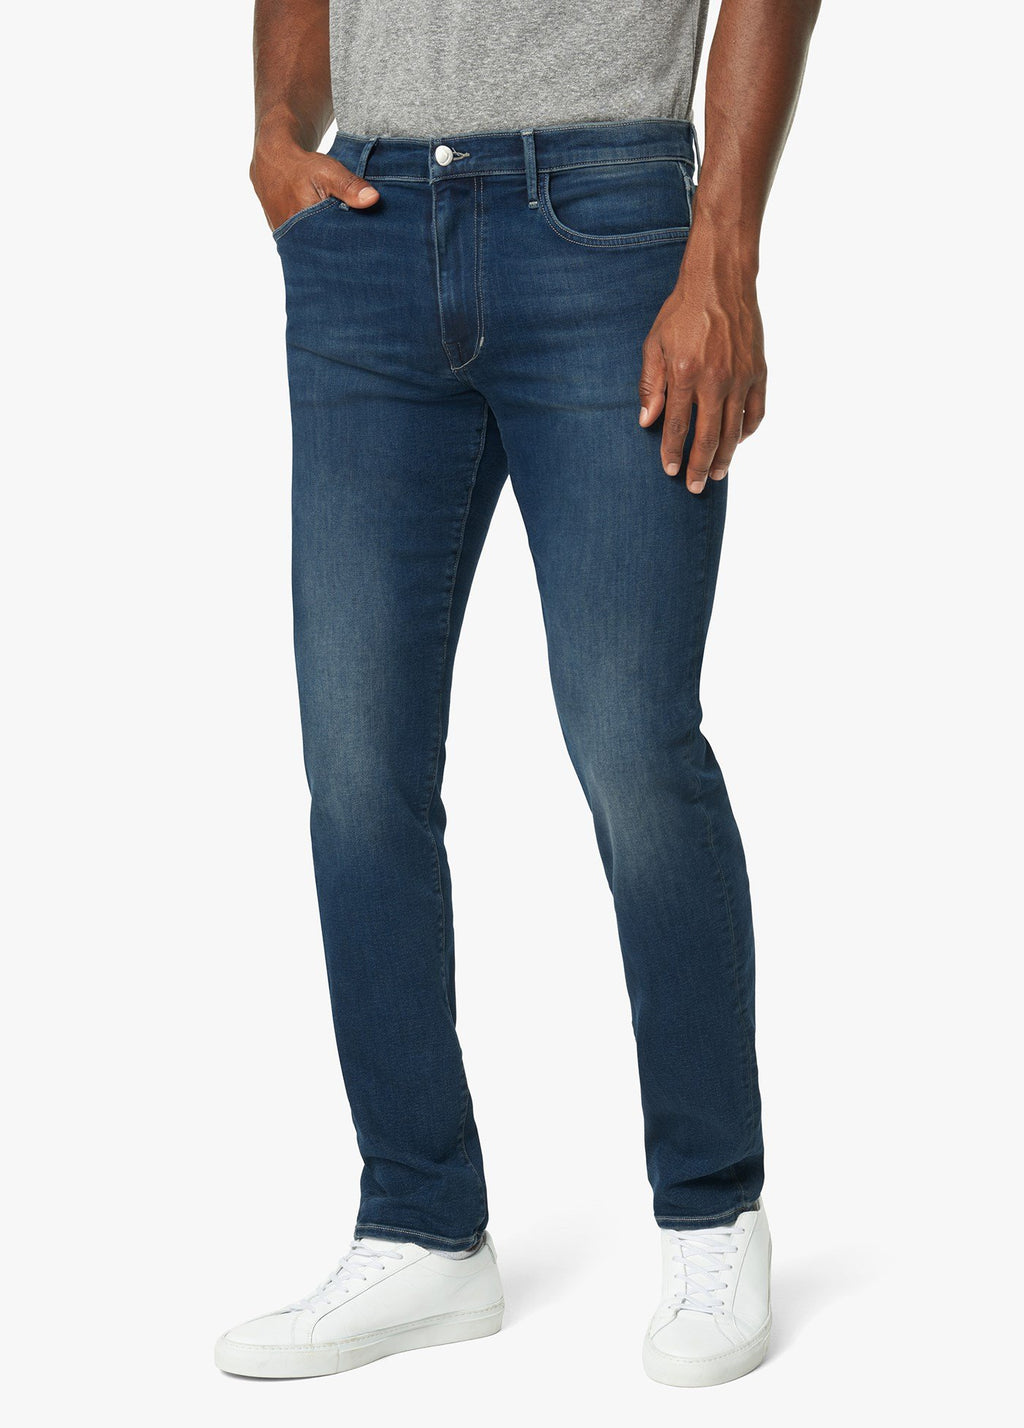 Joe's Jeans Asher Cut - Crick